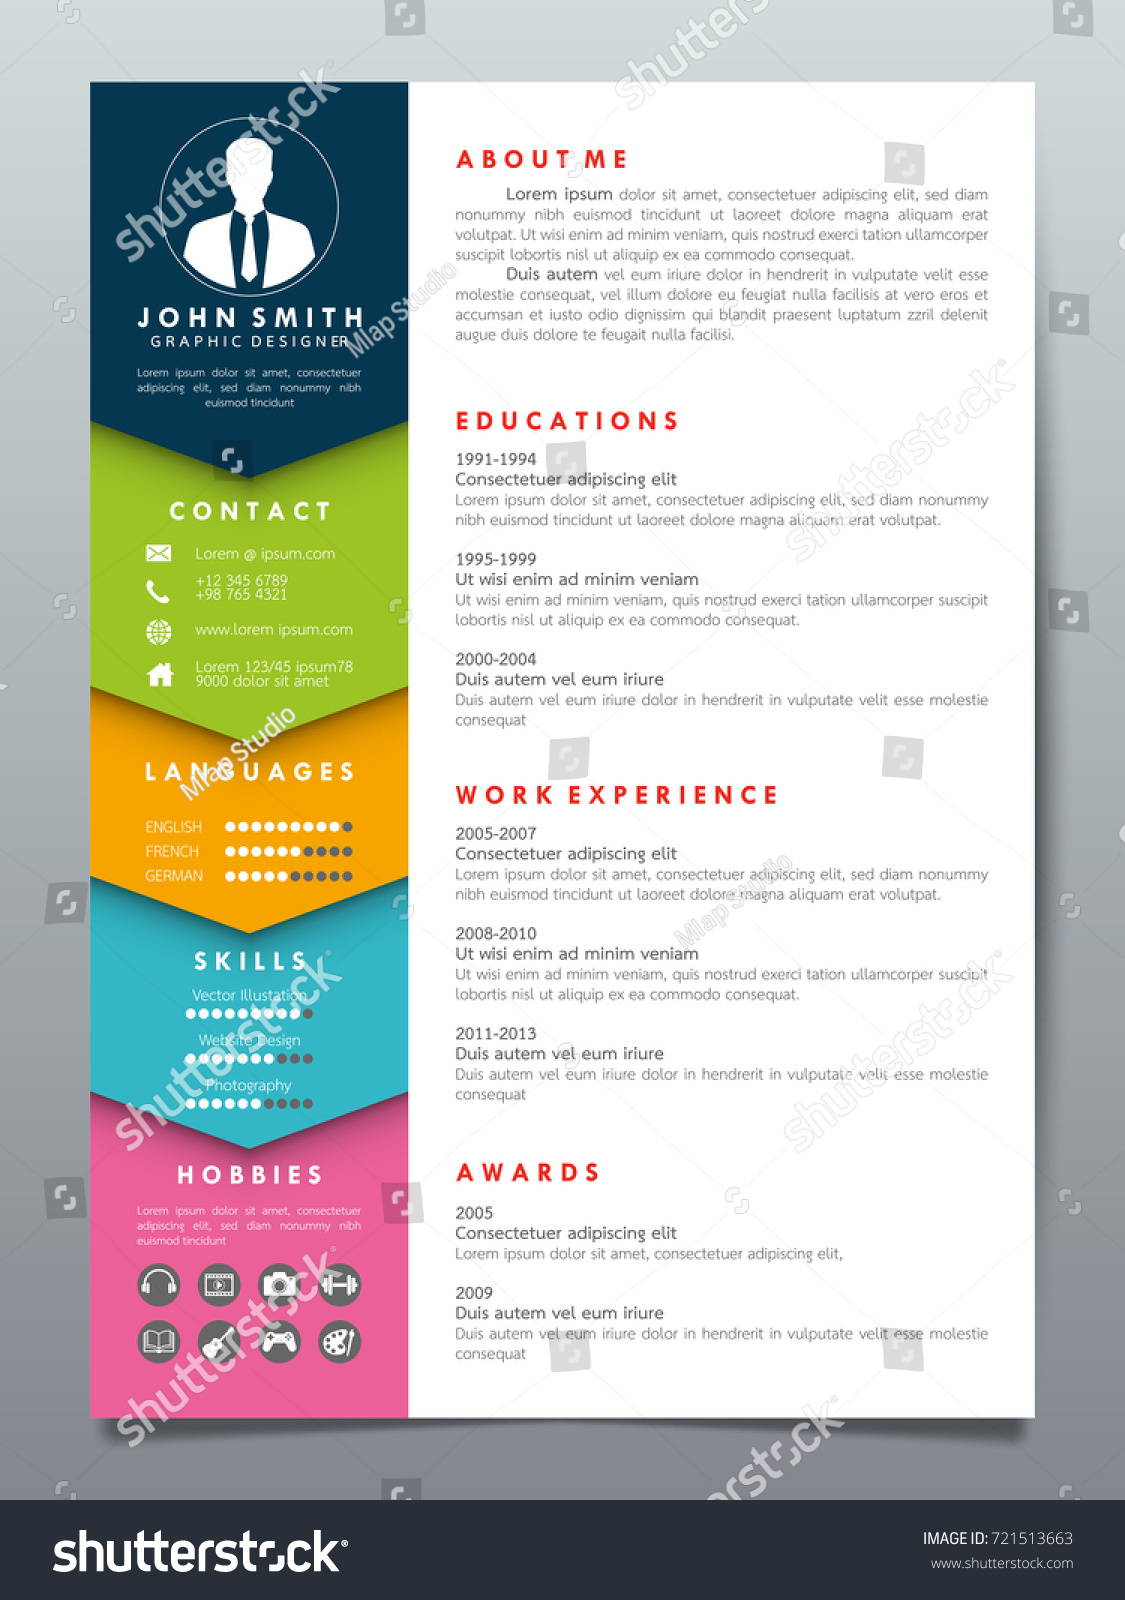 Resume Design Template Minimalist Cv Business Stock Vector Royalty